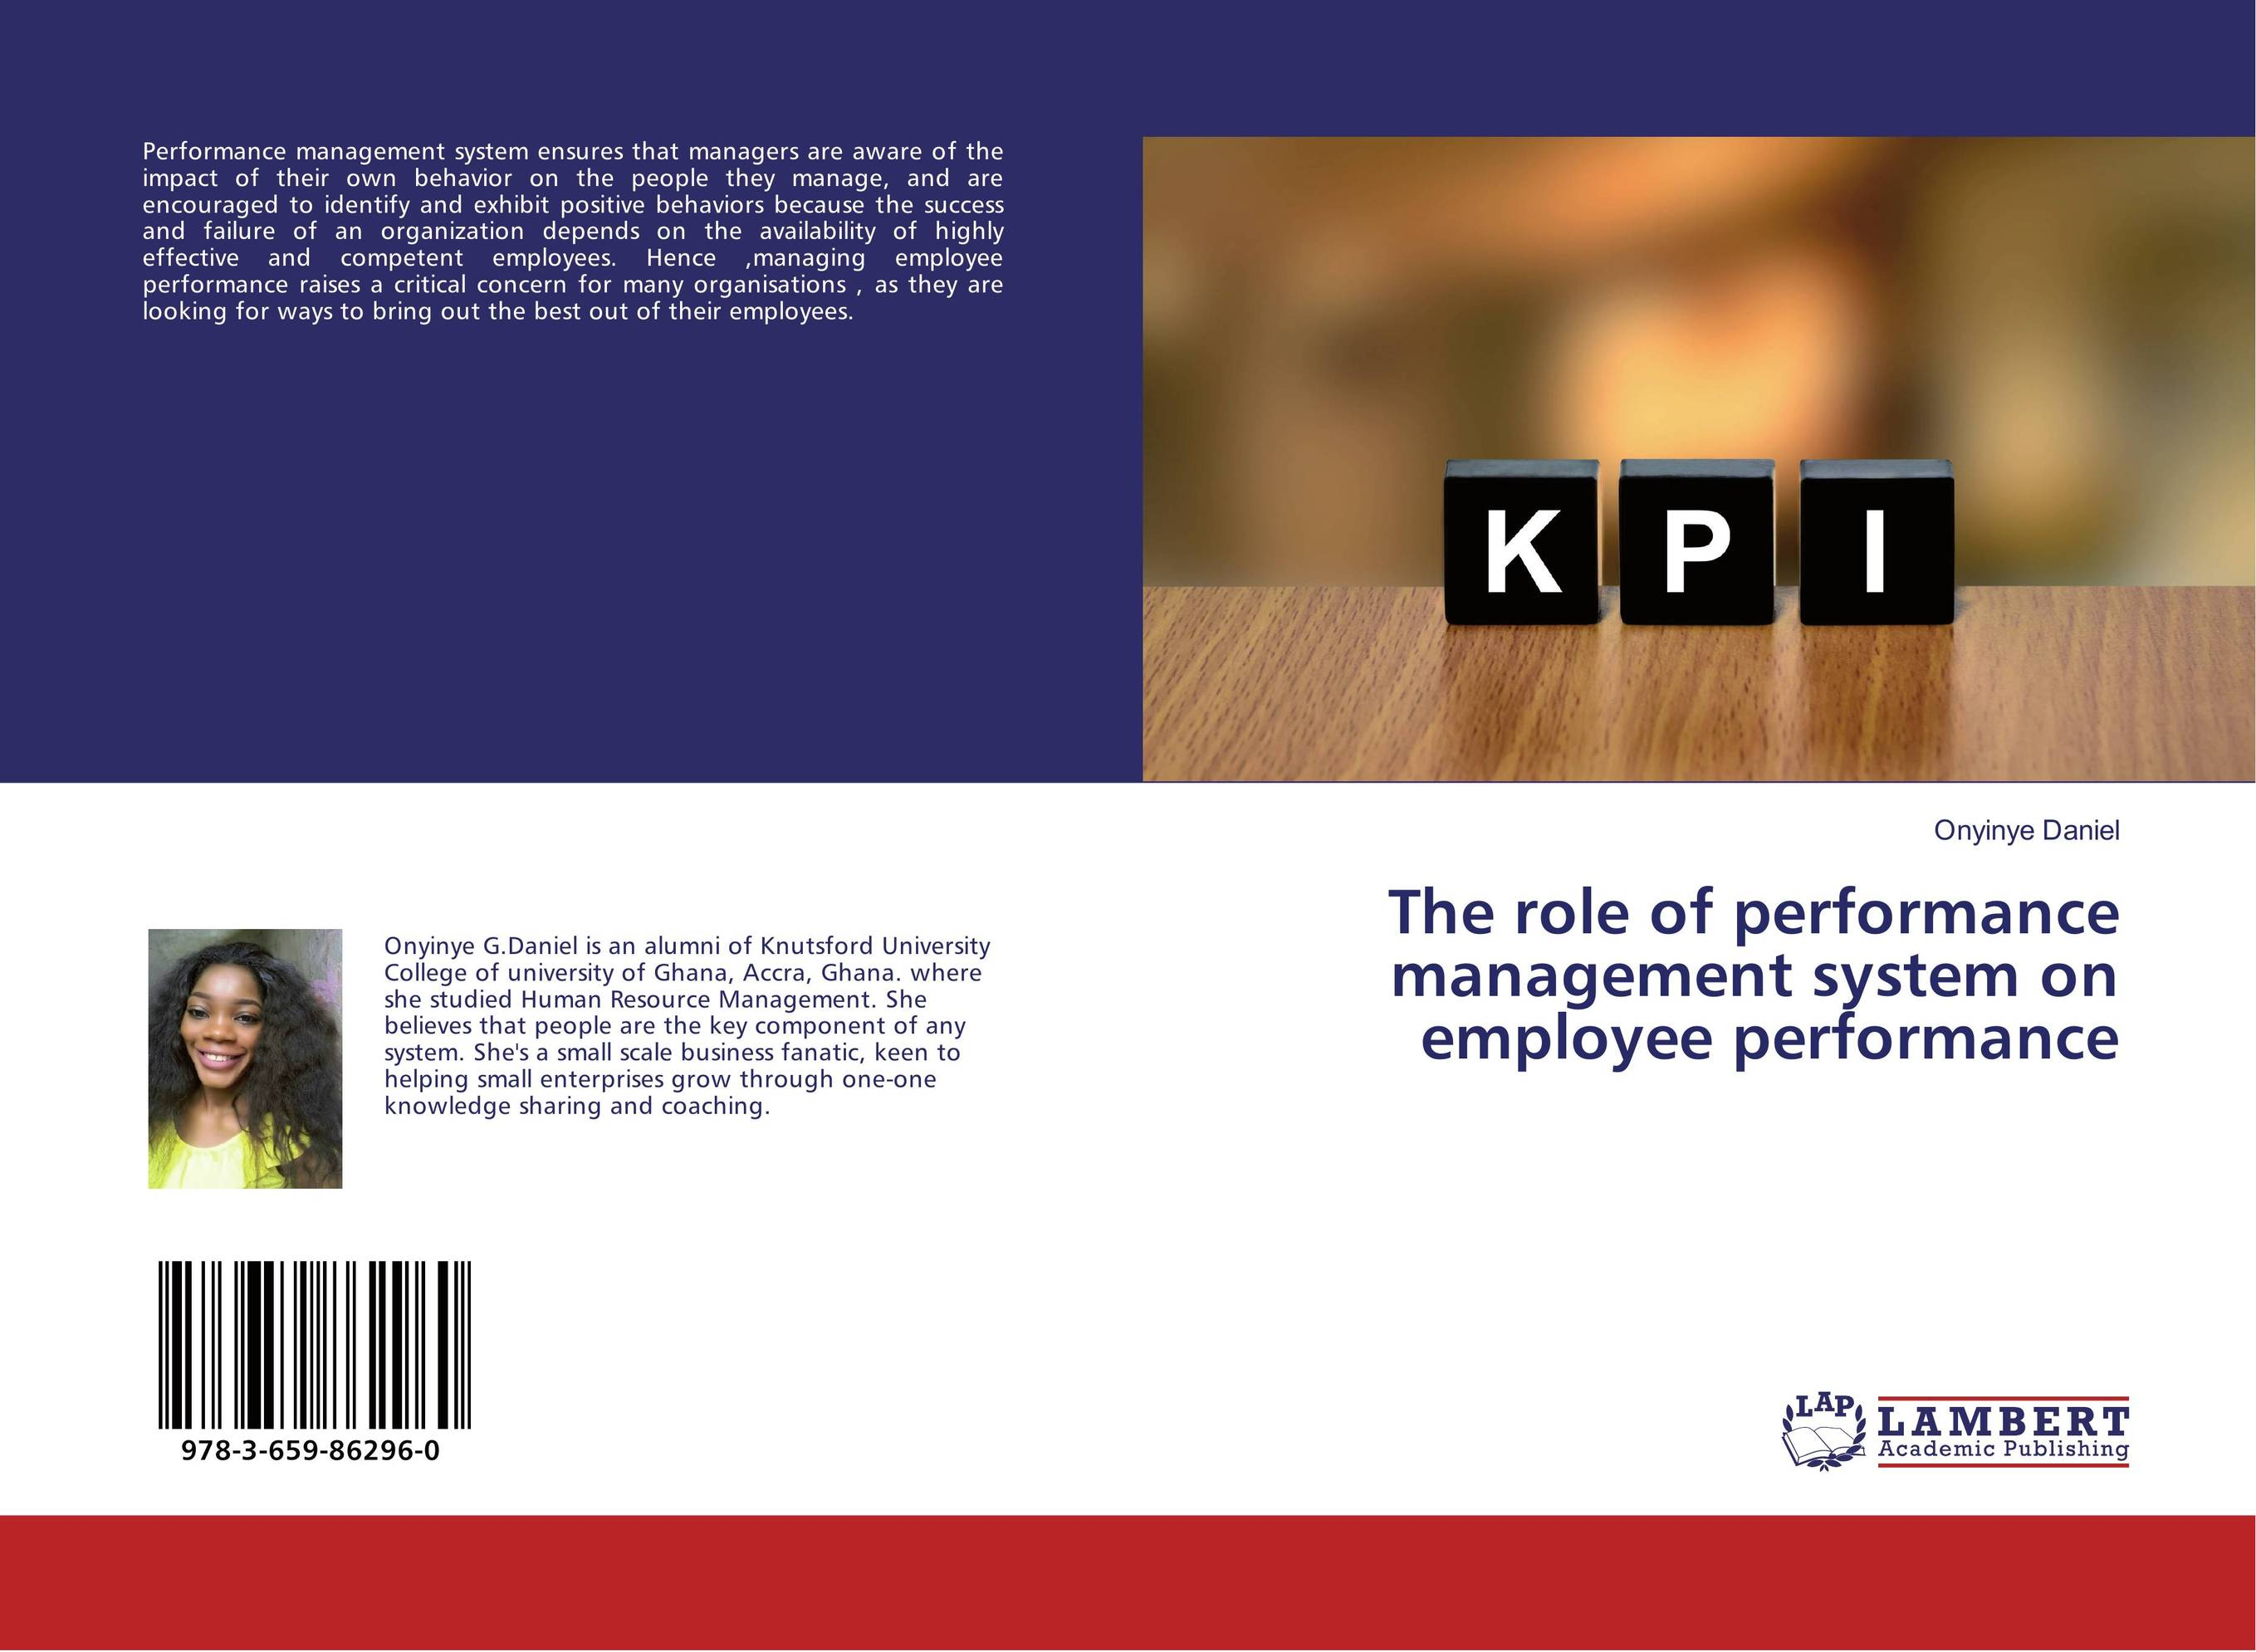 The role of performance management system on employee performance